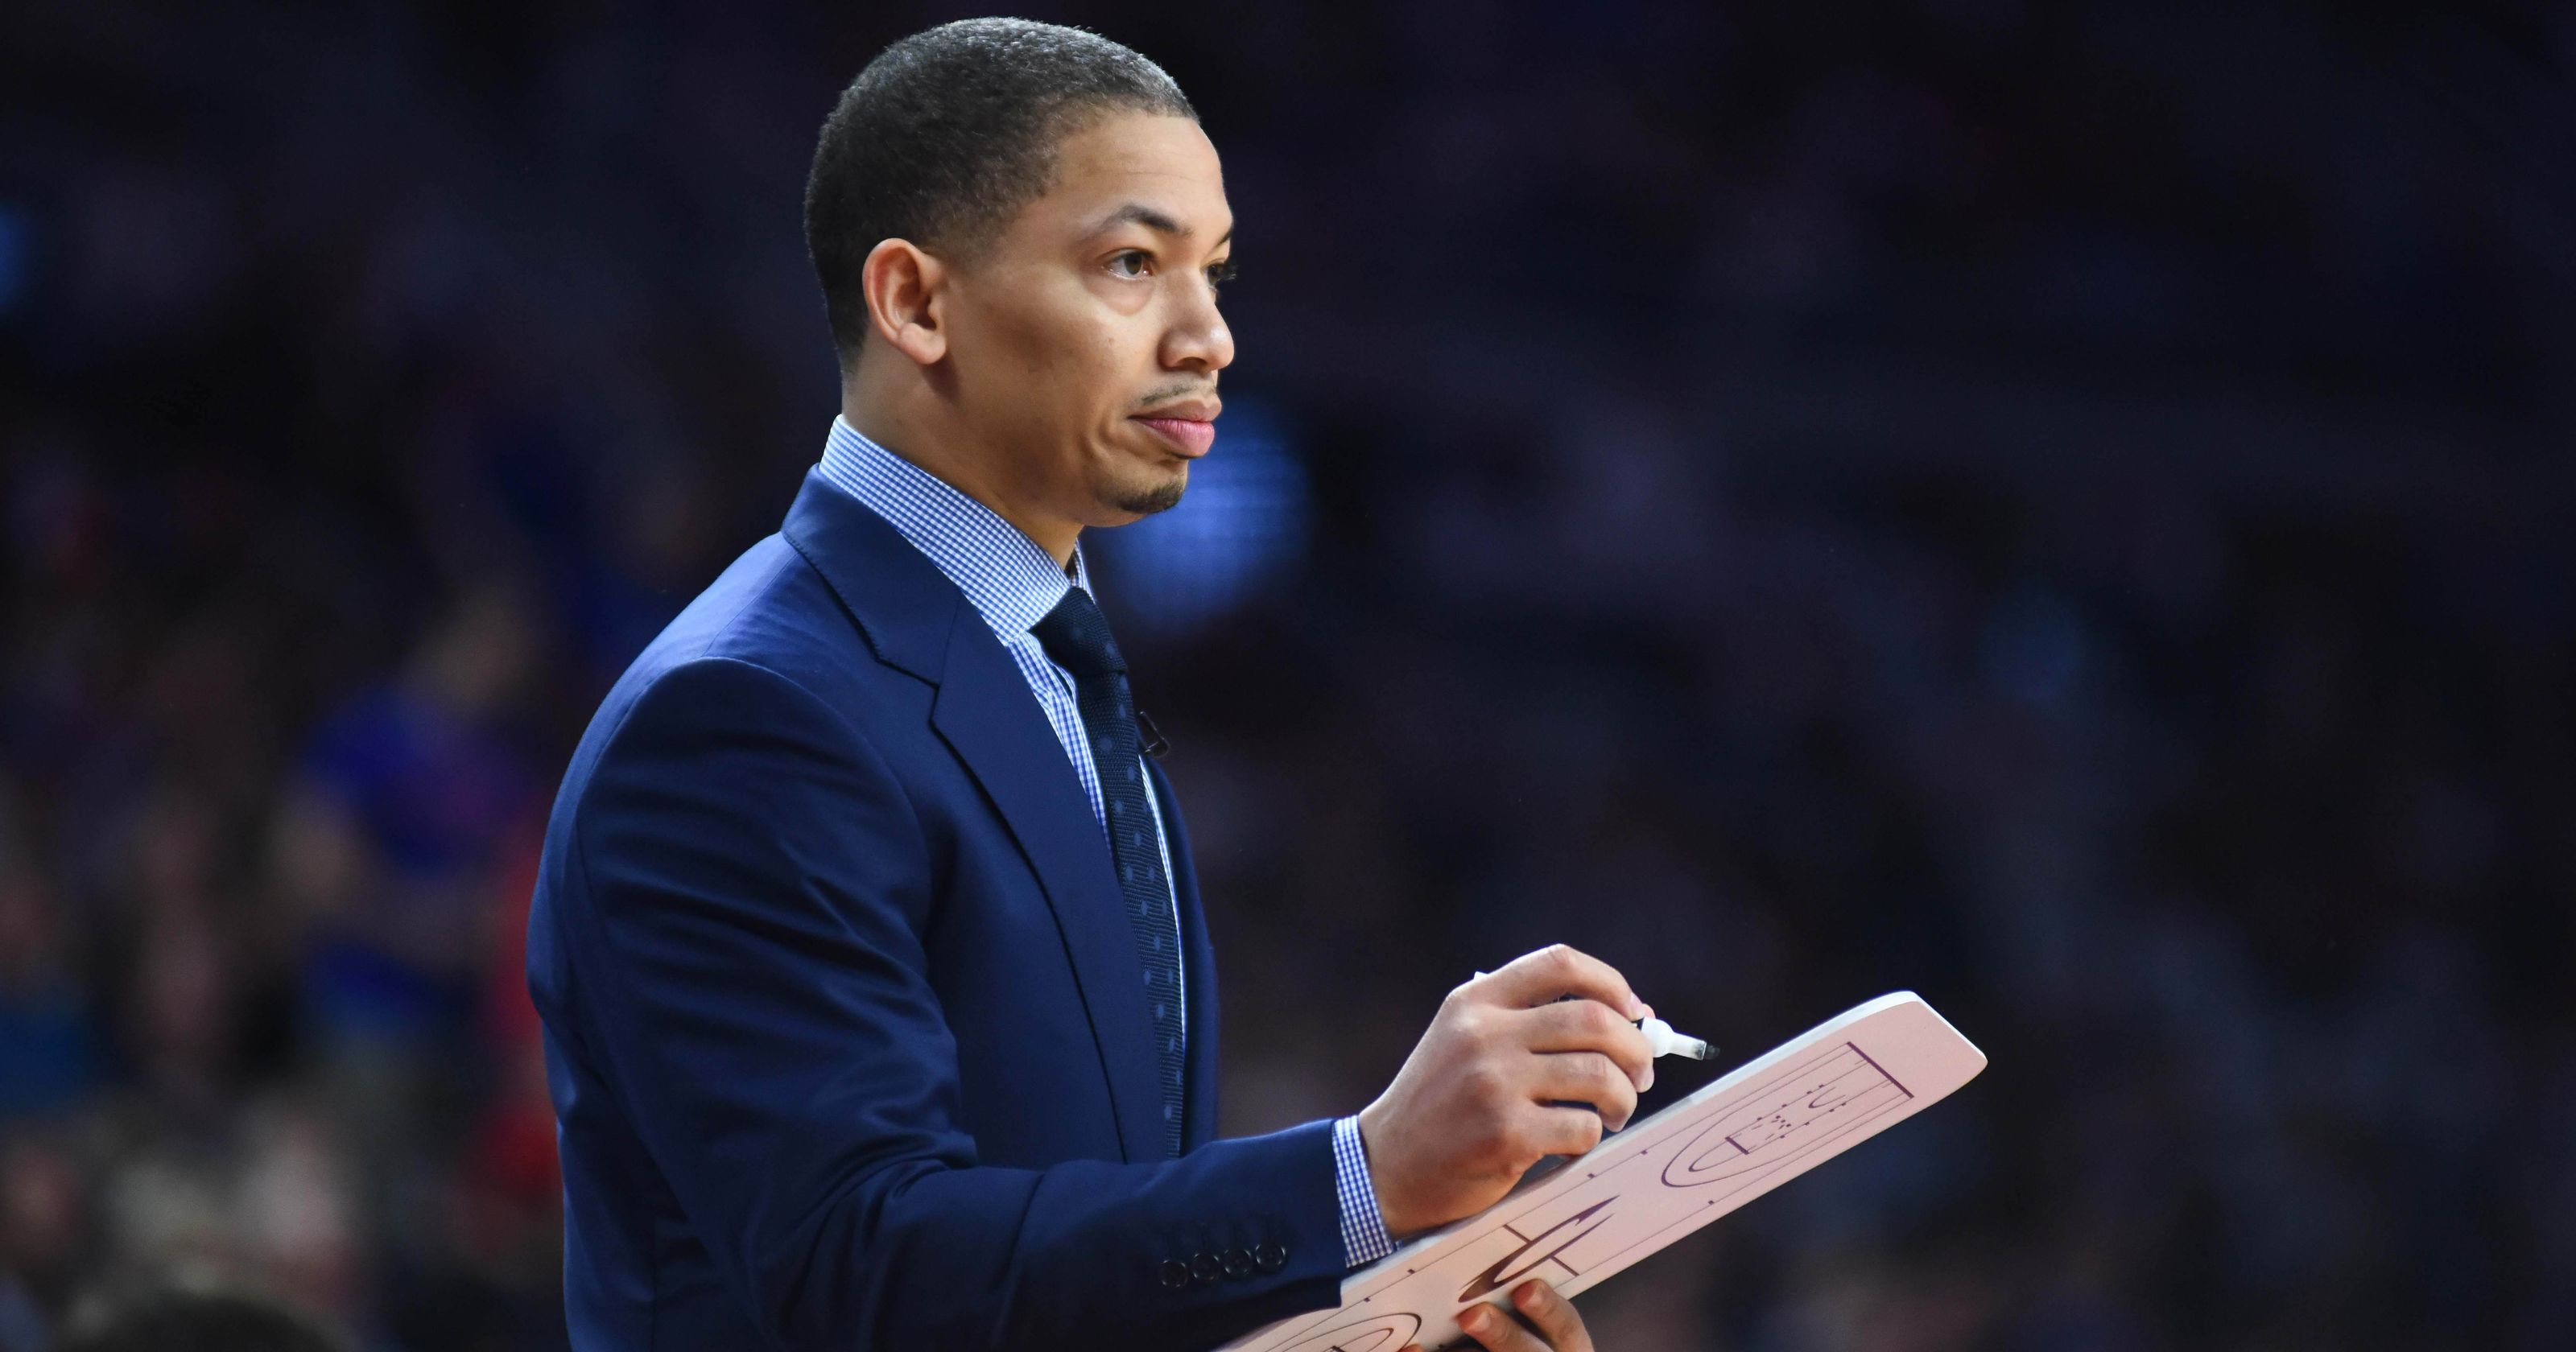 Tyronn Lue made extra sure to shoutout his hometown of Mexico Missouri during the NBA Finals after winning the championship